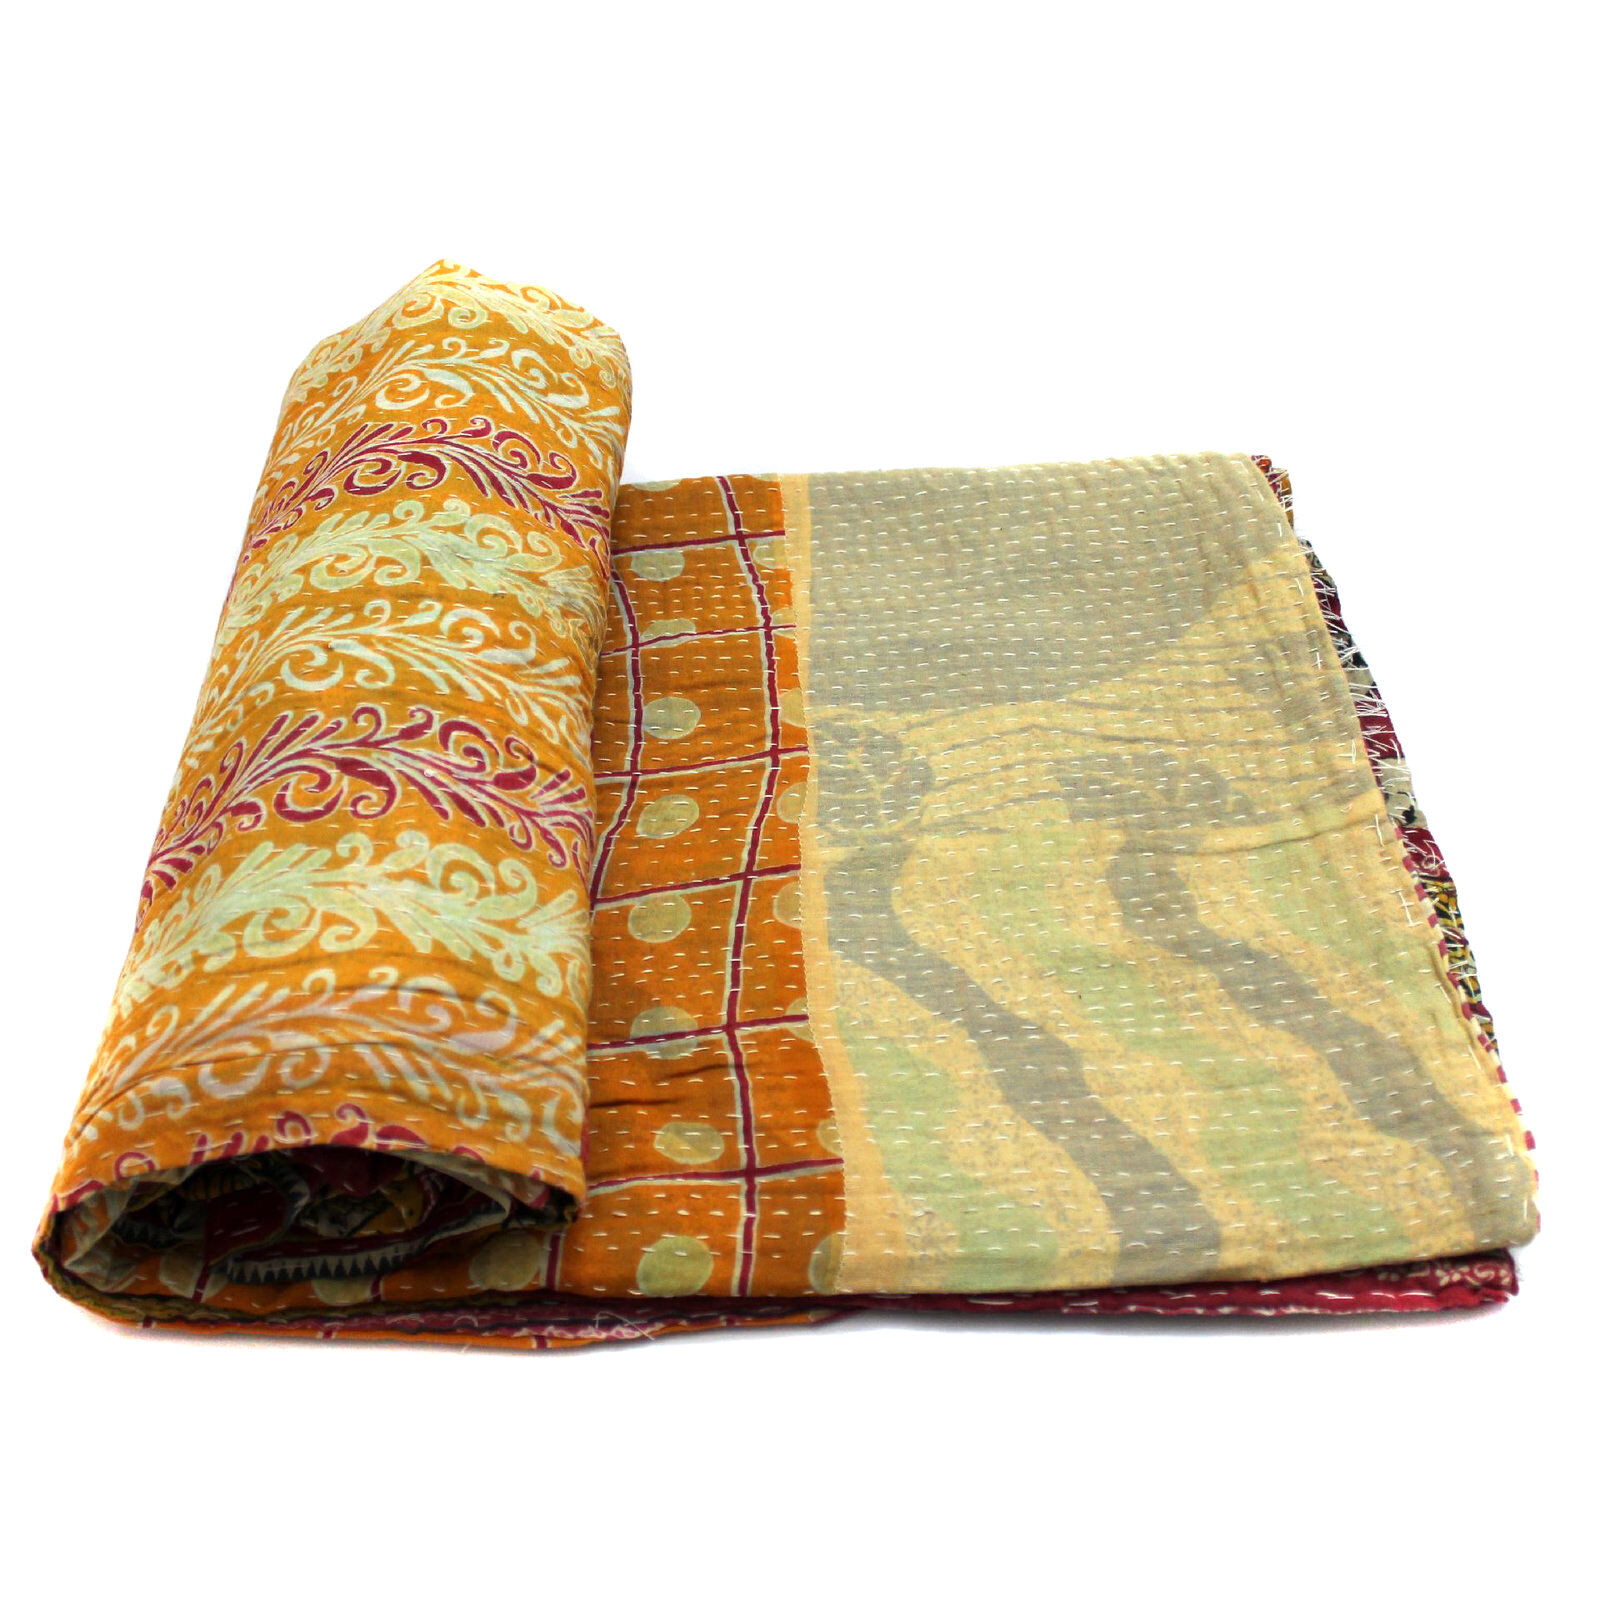 Vintage Kantha Quilt Indian Handmade Cotton Bedspread Couch Cover Blanket Throw